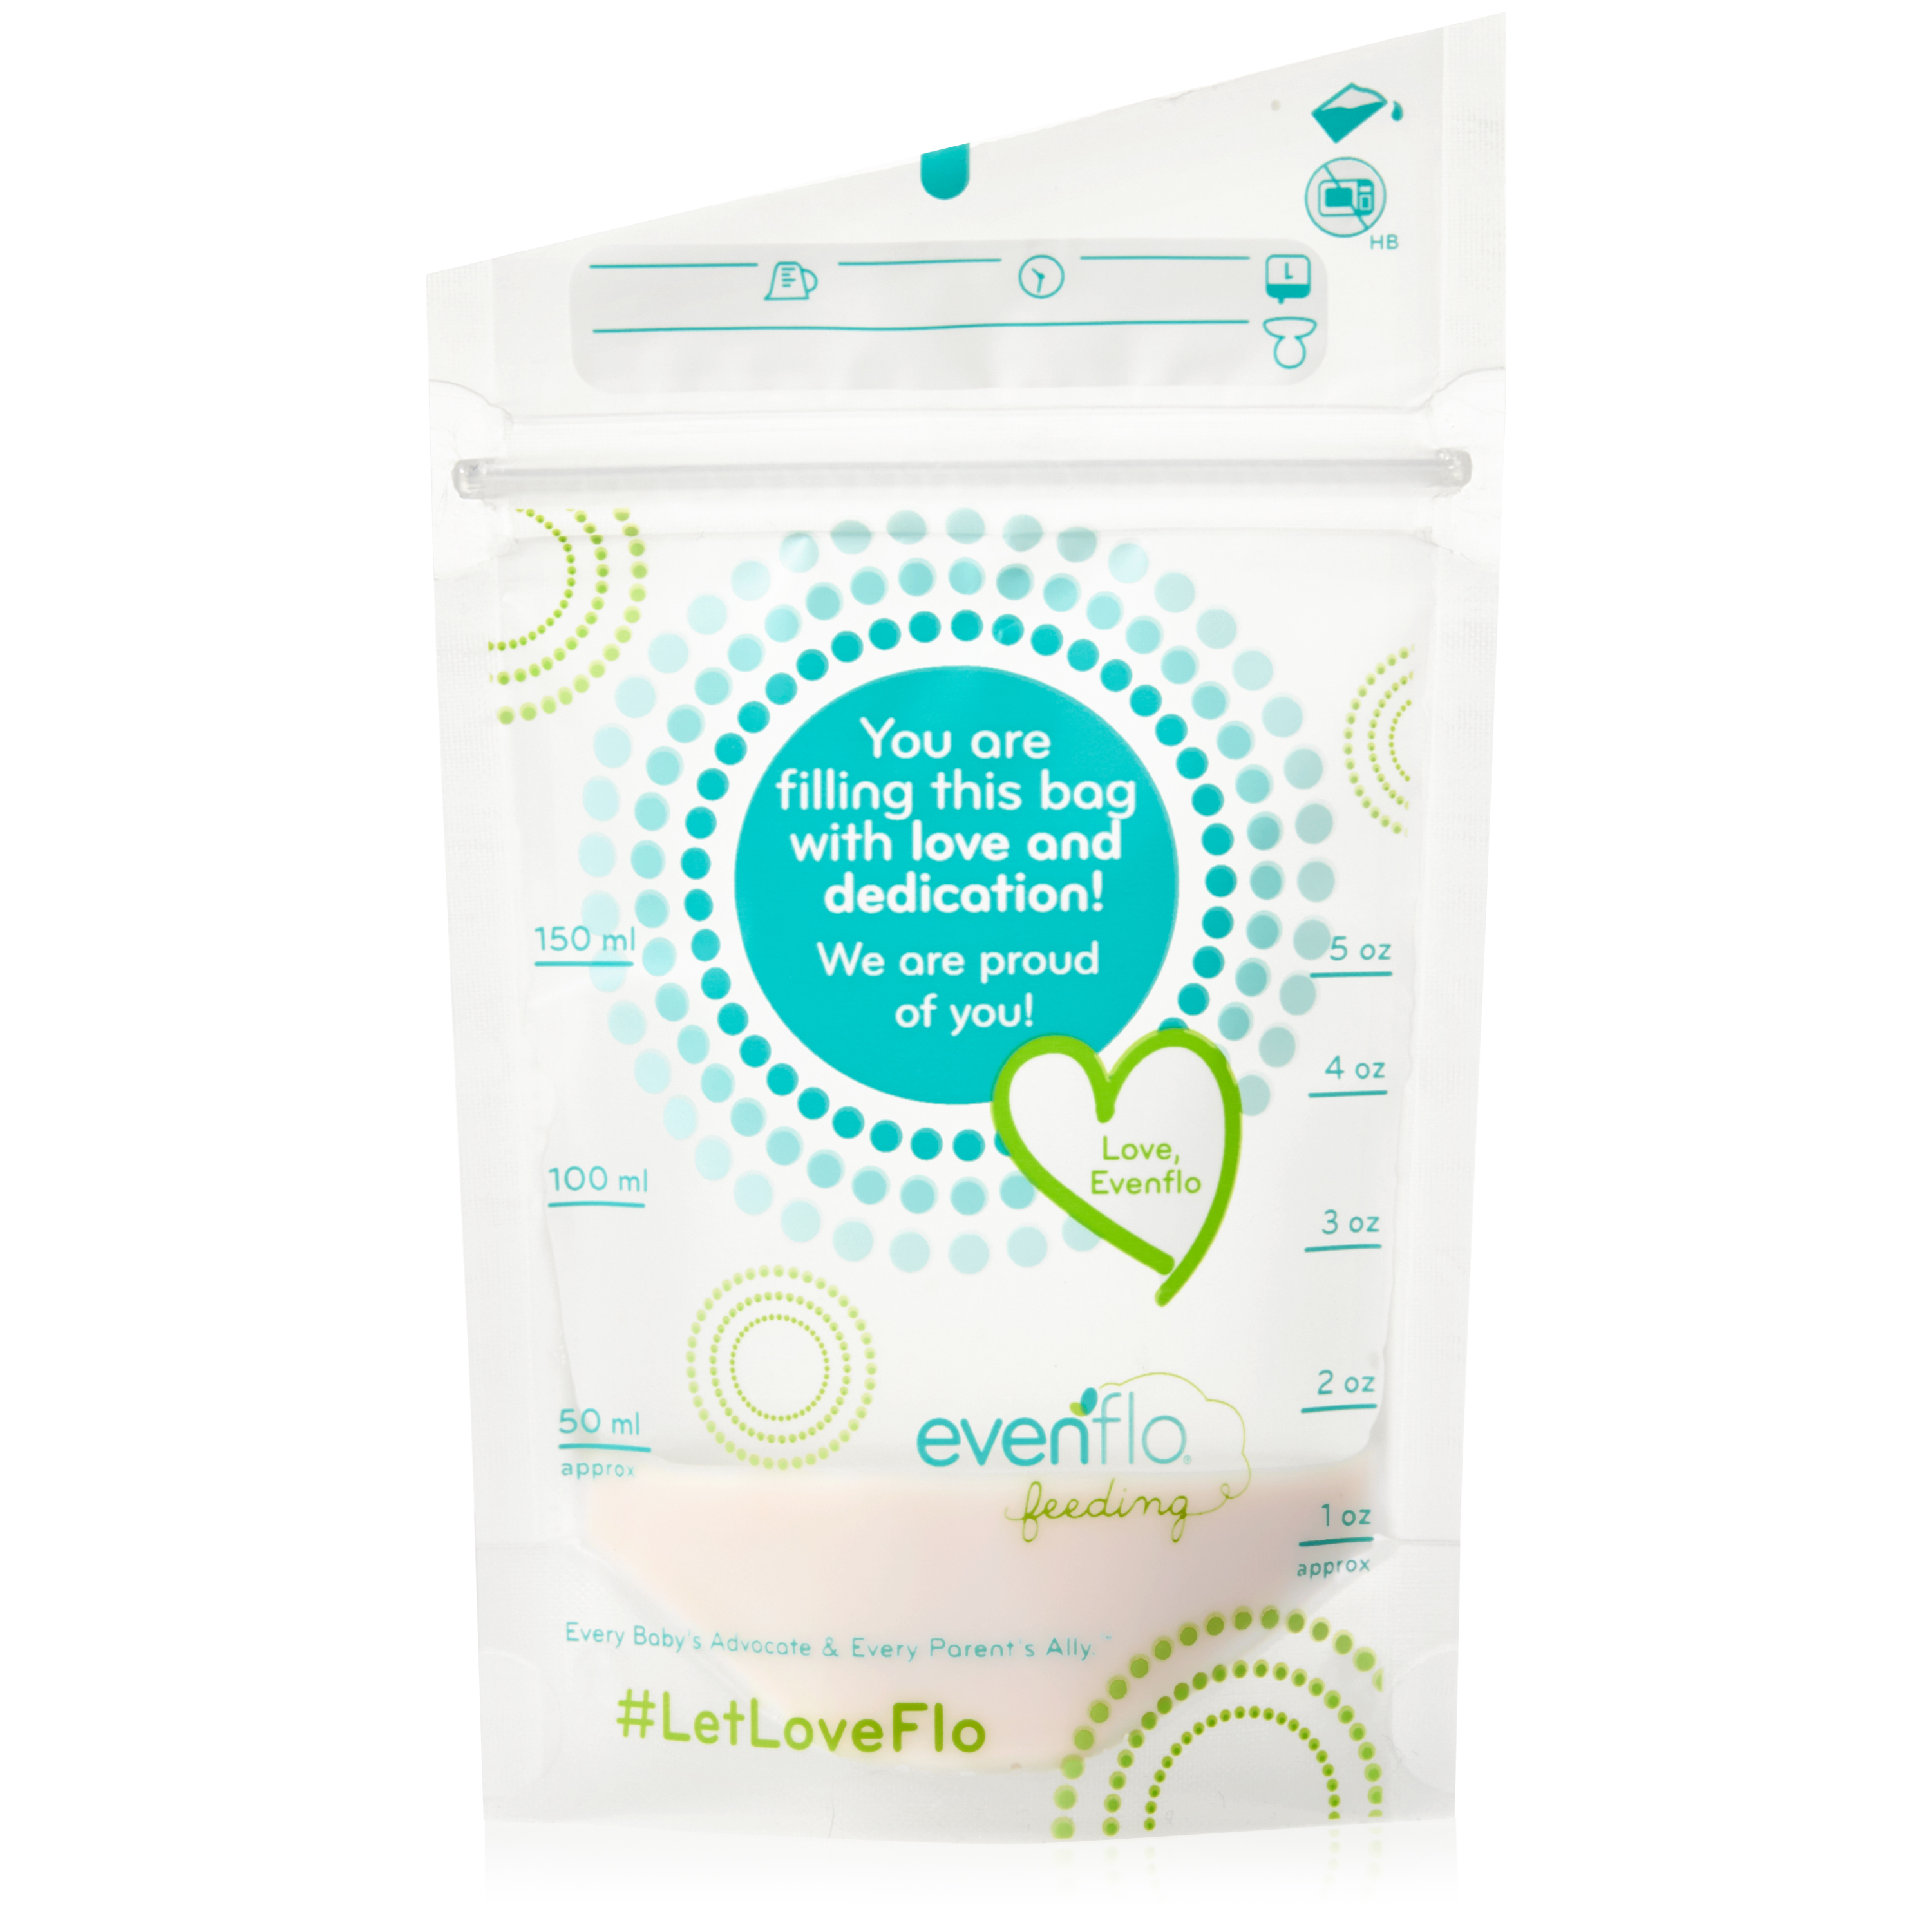 Evenflo Feeding Advanced Breast Milk Storage Bags - 5oz, 20ct